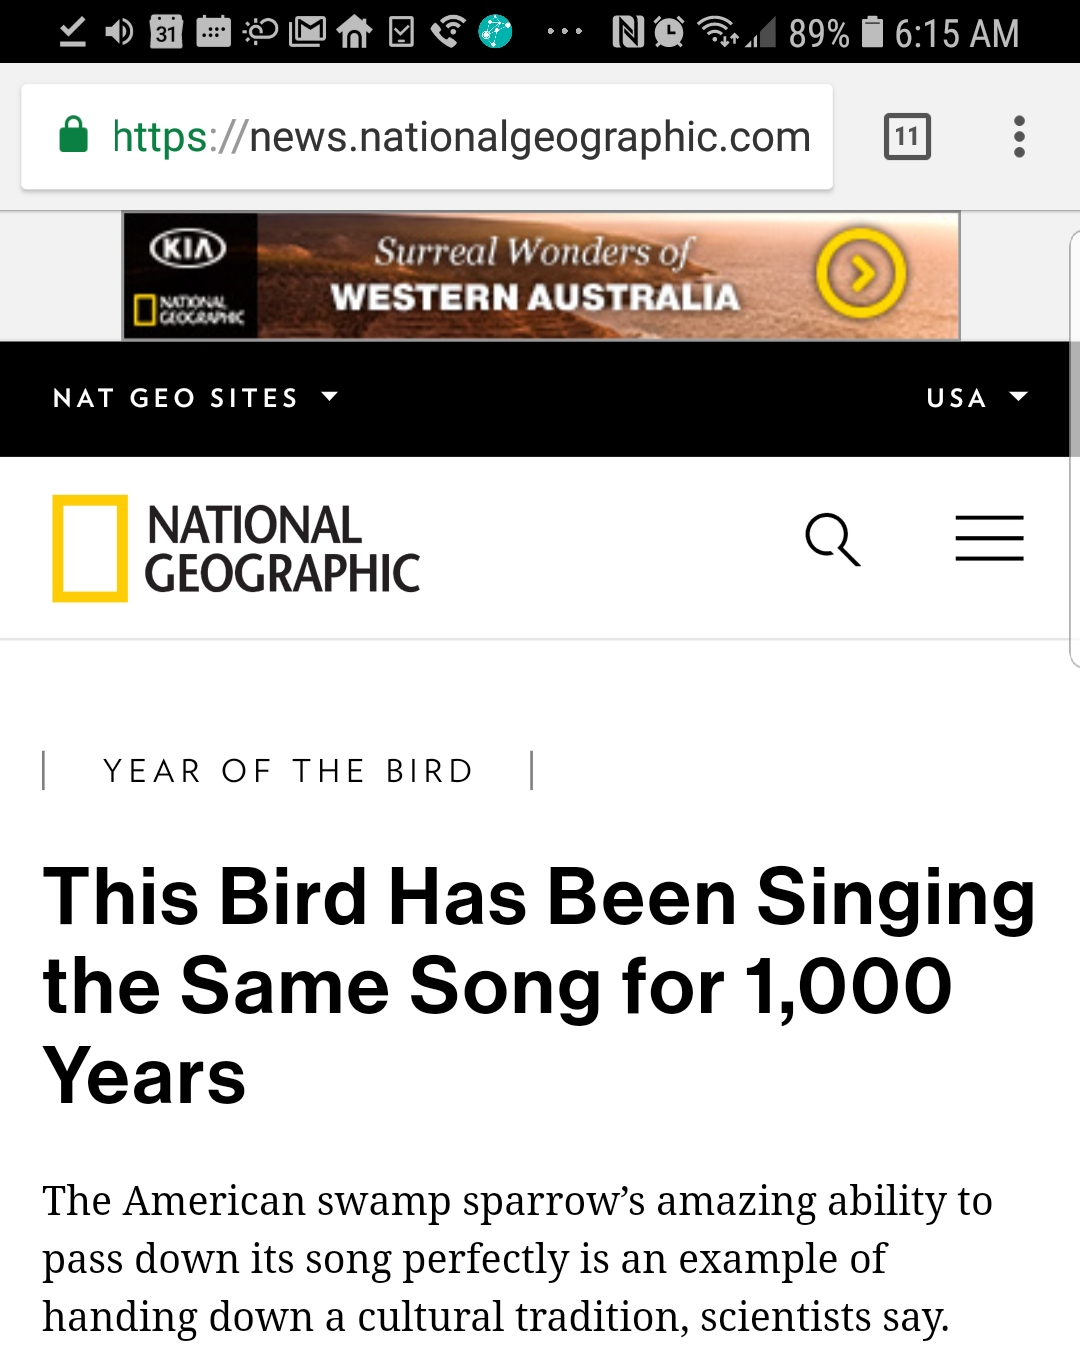 National Geographic fake news headline about birds singing same melody for 1,000 years